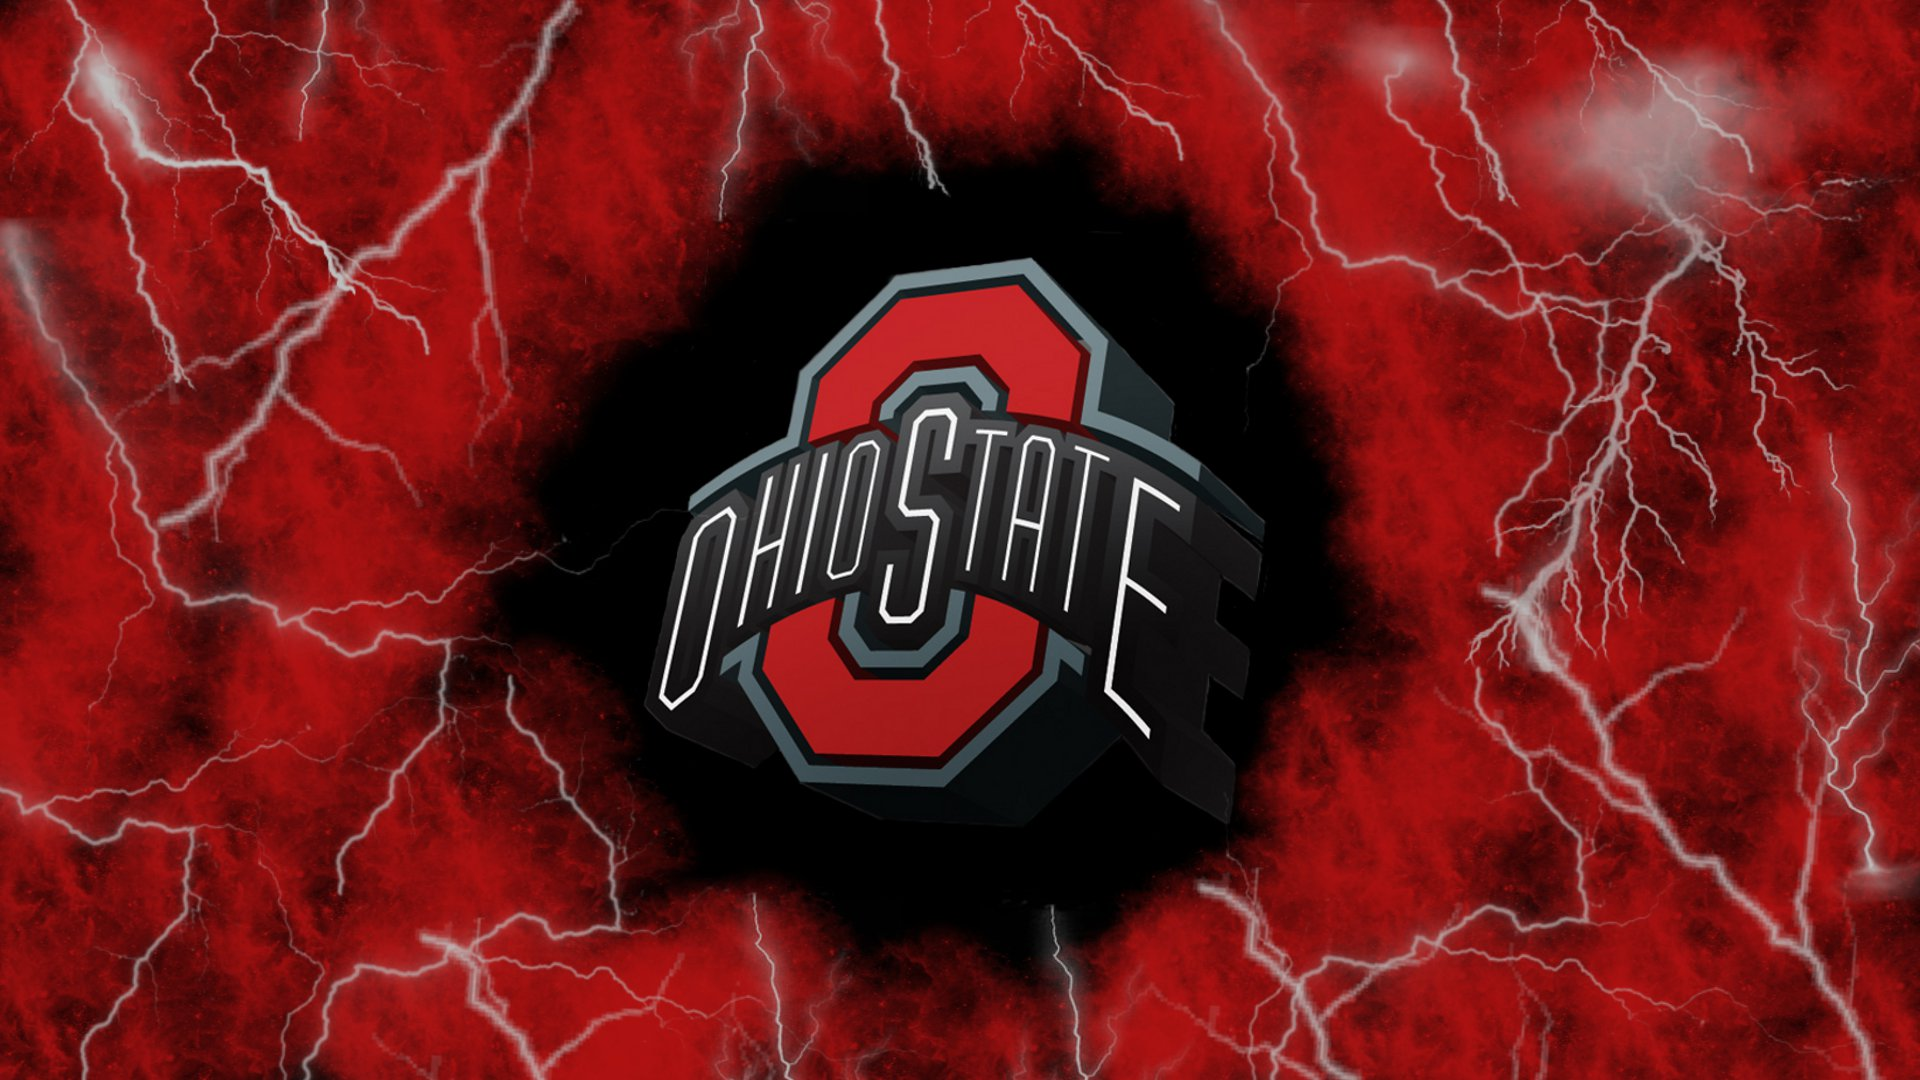 Ohio State Background Wallpaper - WallpaperSafari